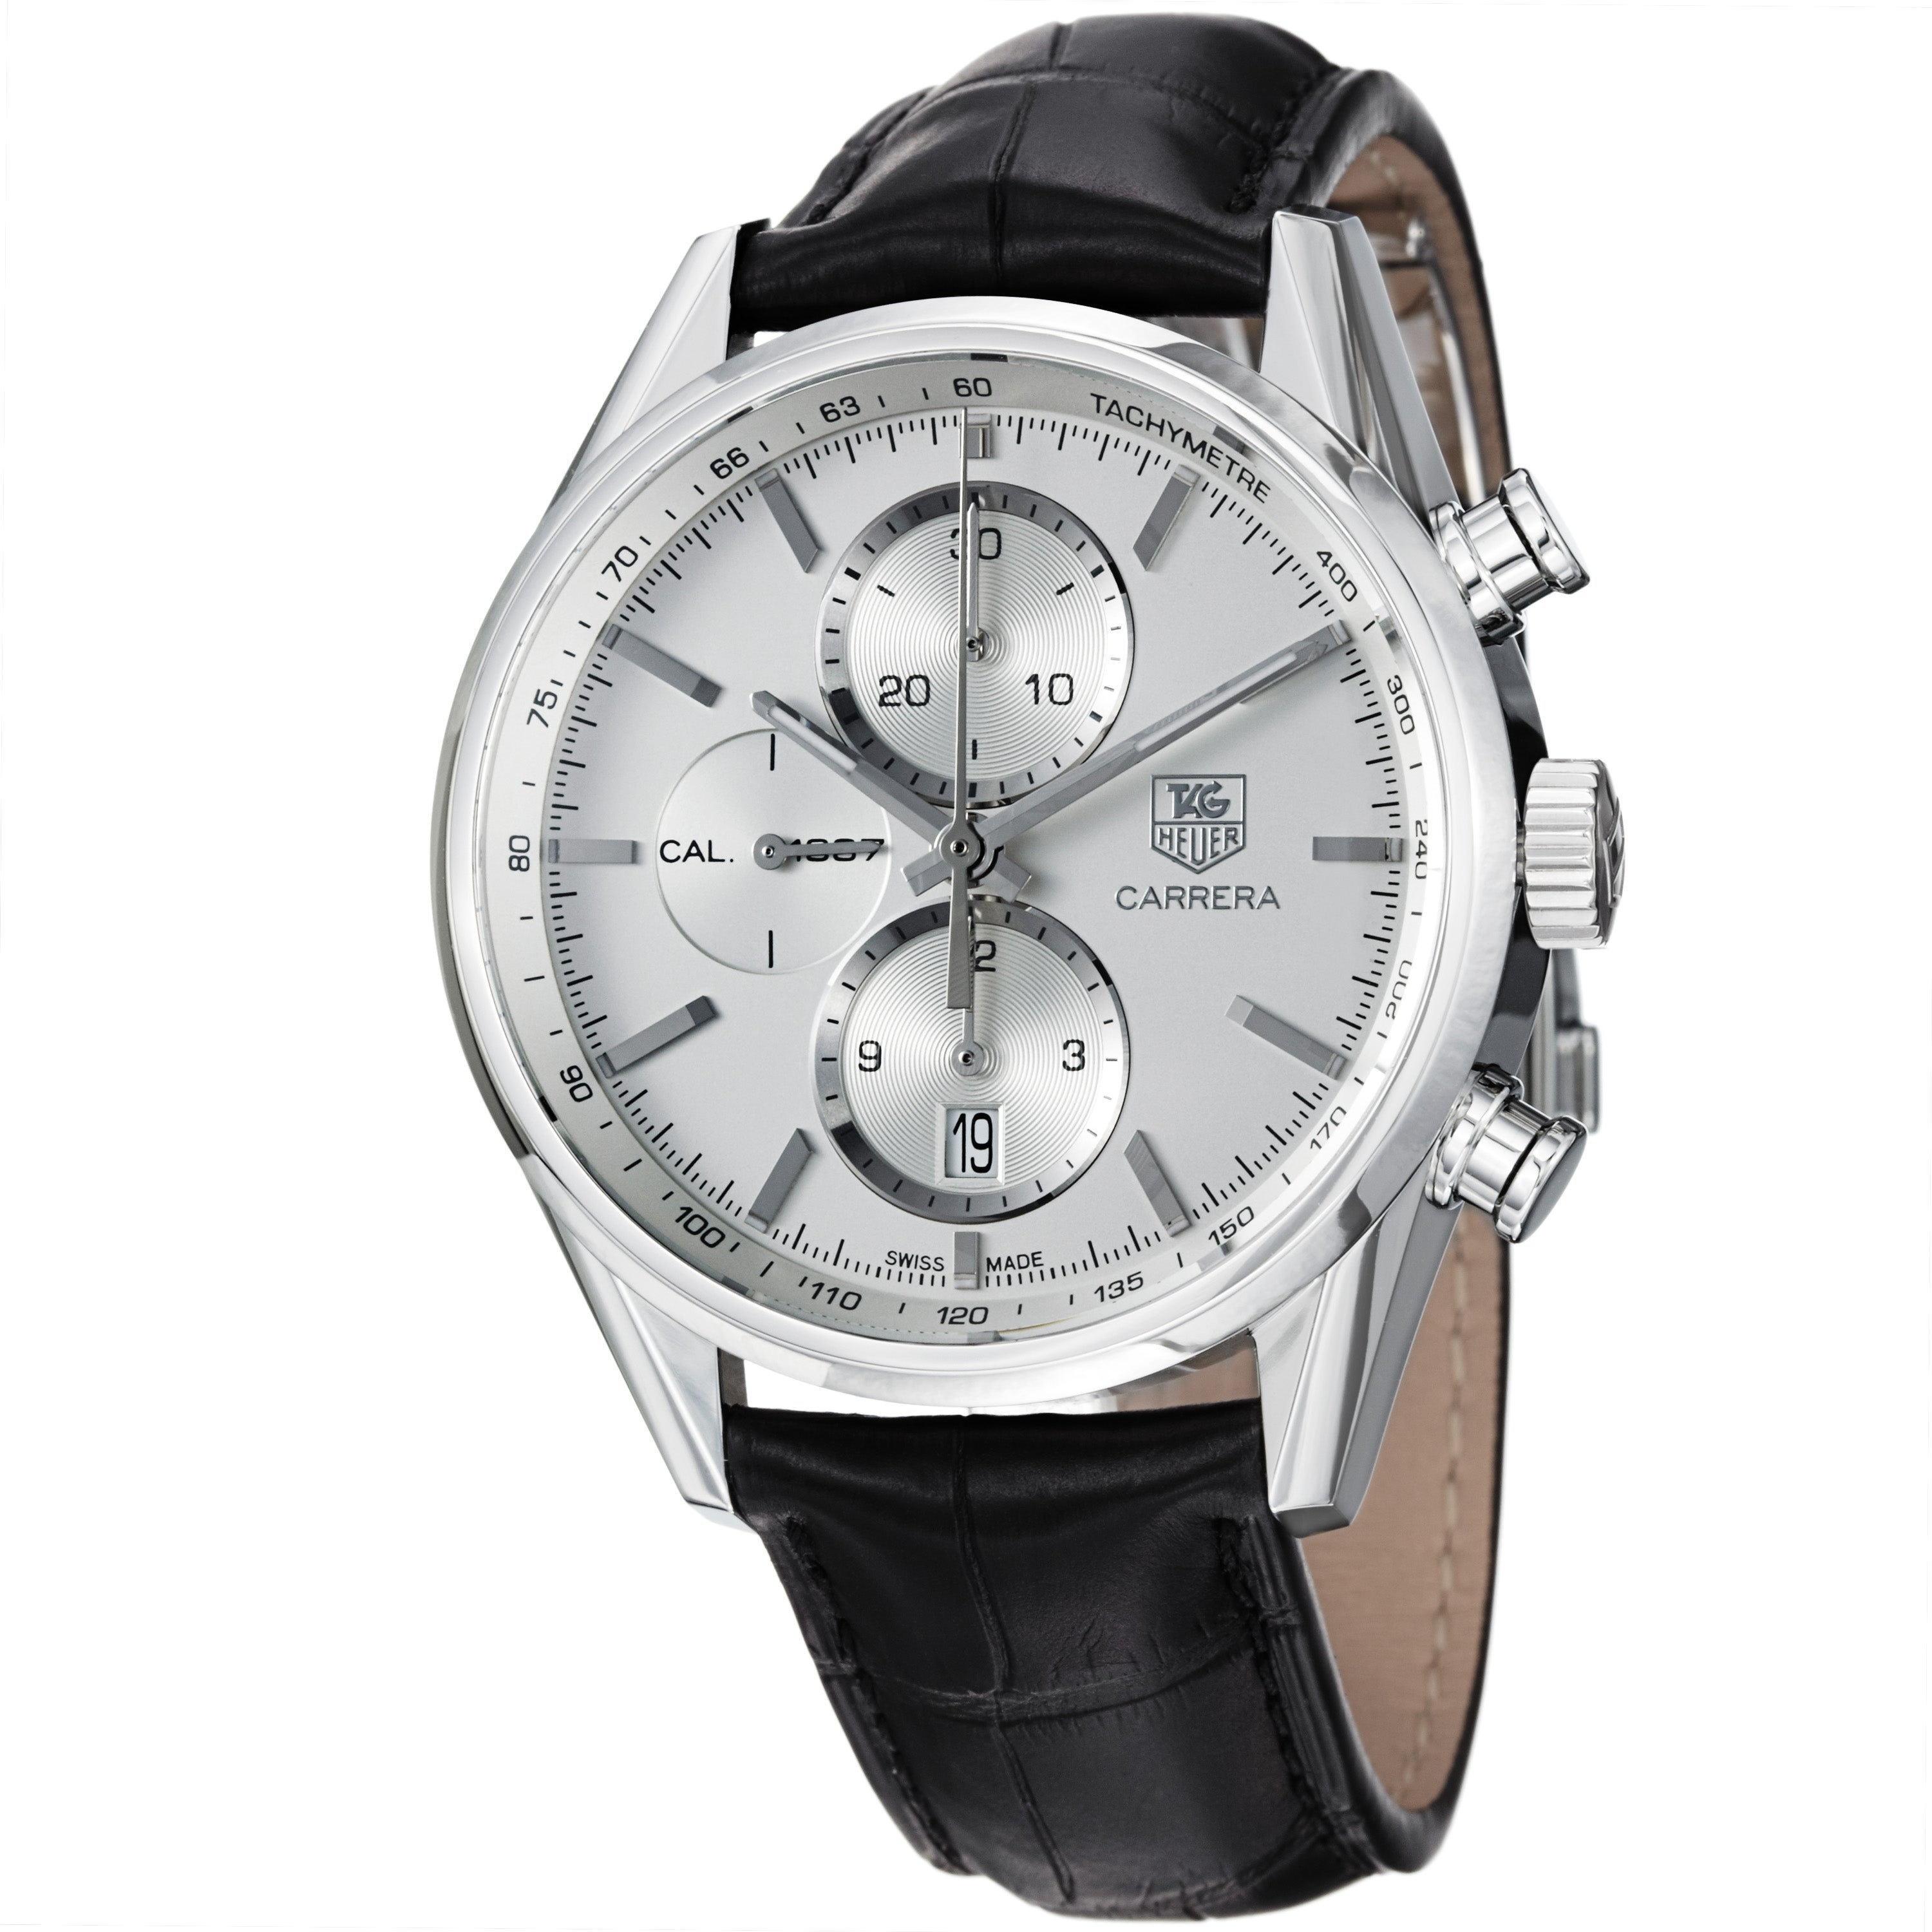 a37c885a9bbb Shop Tag Heuer Men s CAR2111.FC6266  Carrera  Silver Dial Leather Strap  Chronograph Watch - Free Shipping Today - Overstock - 6827741